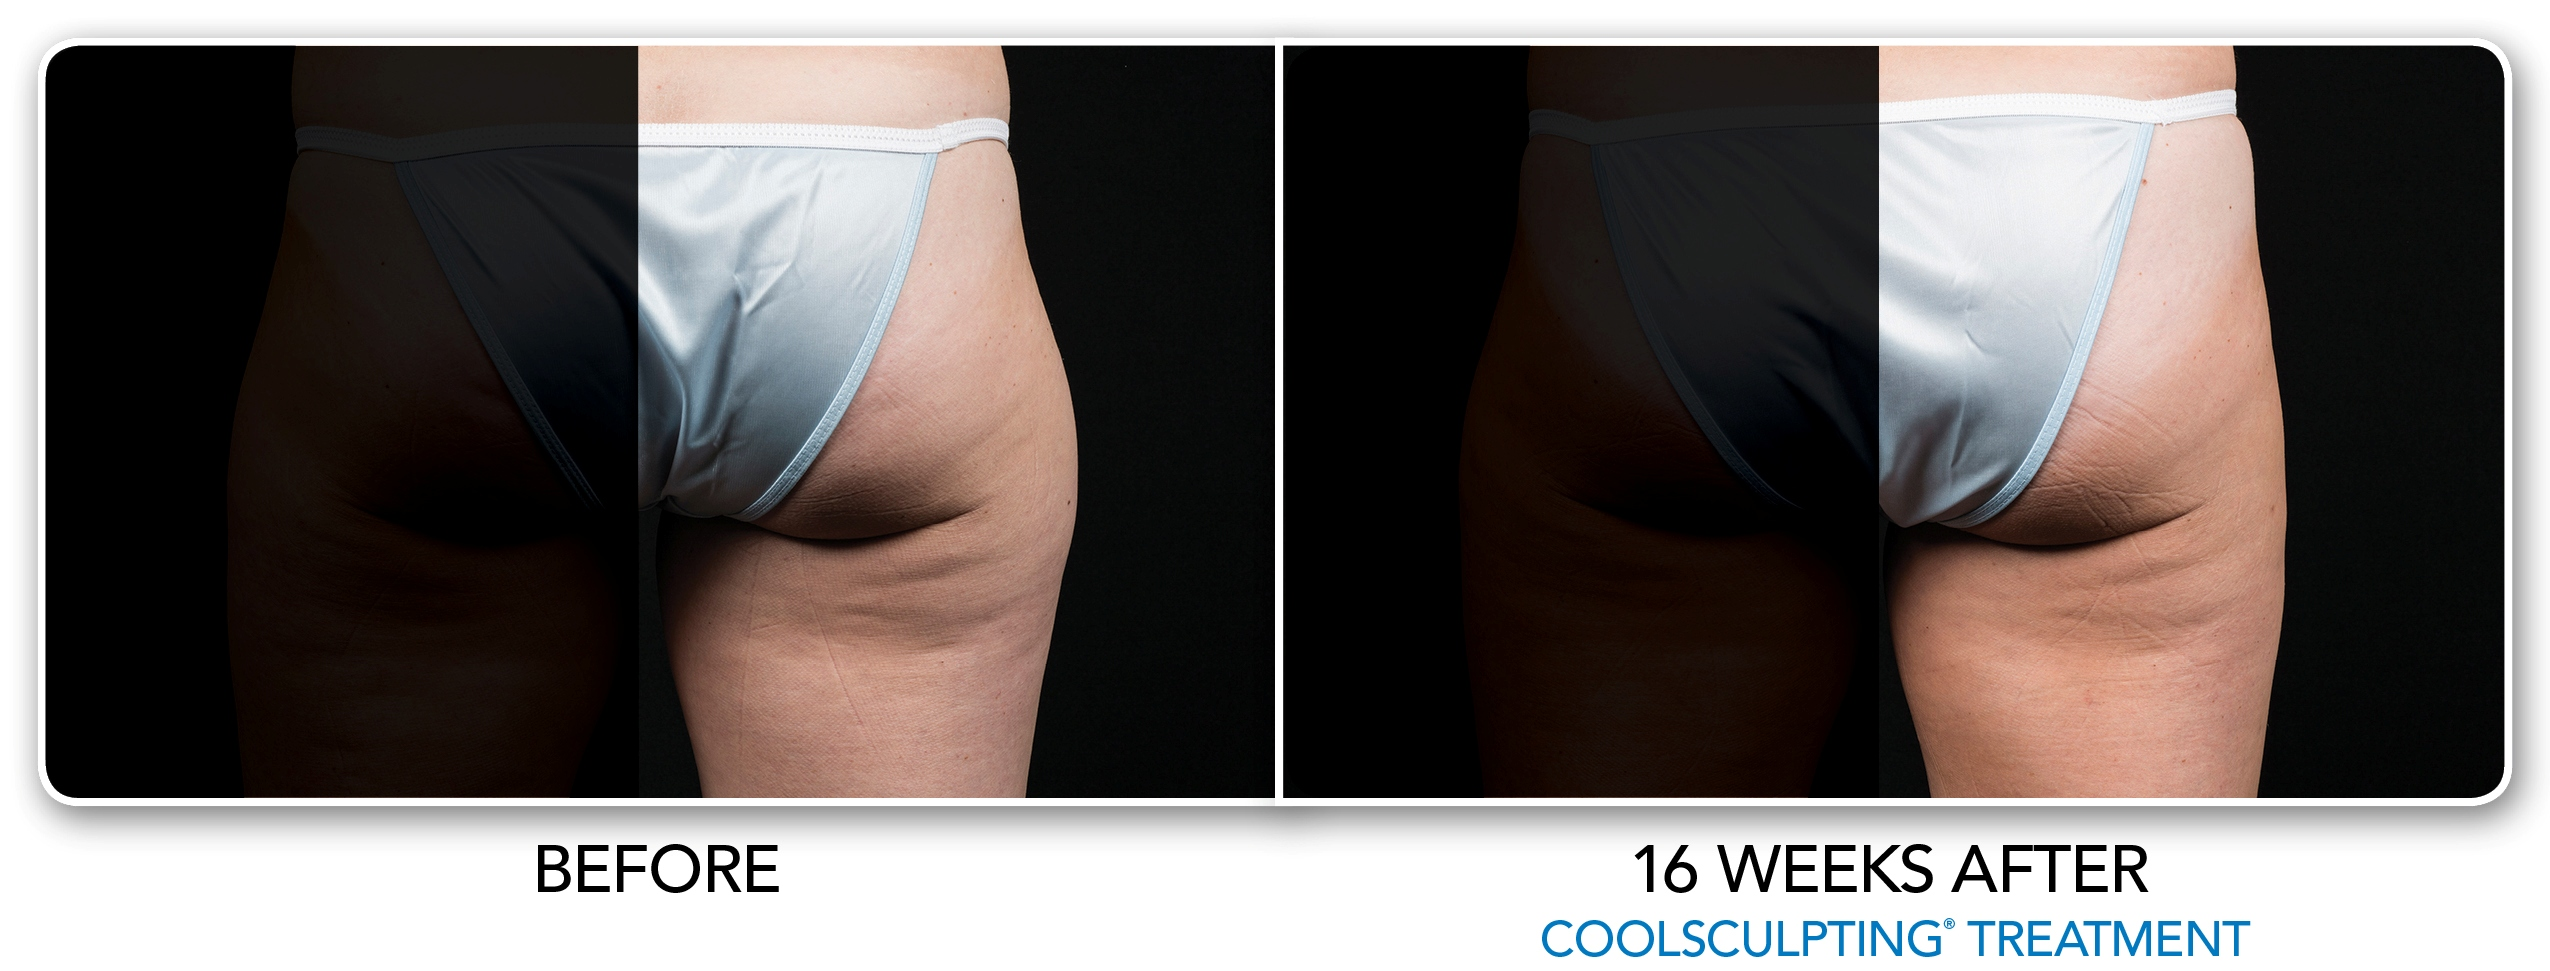 Coolsculpting Saddlebags Thigh Fat Connecticut Treatment